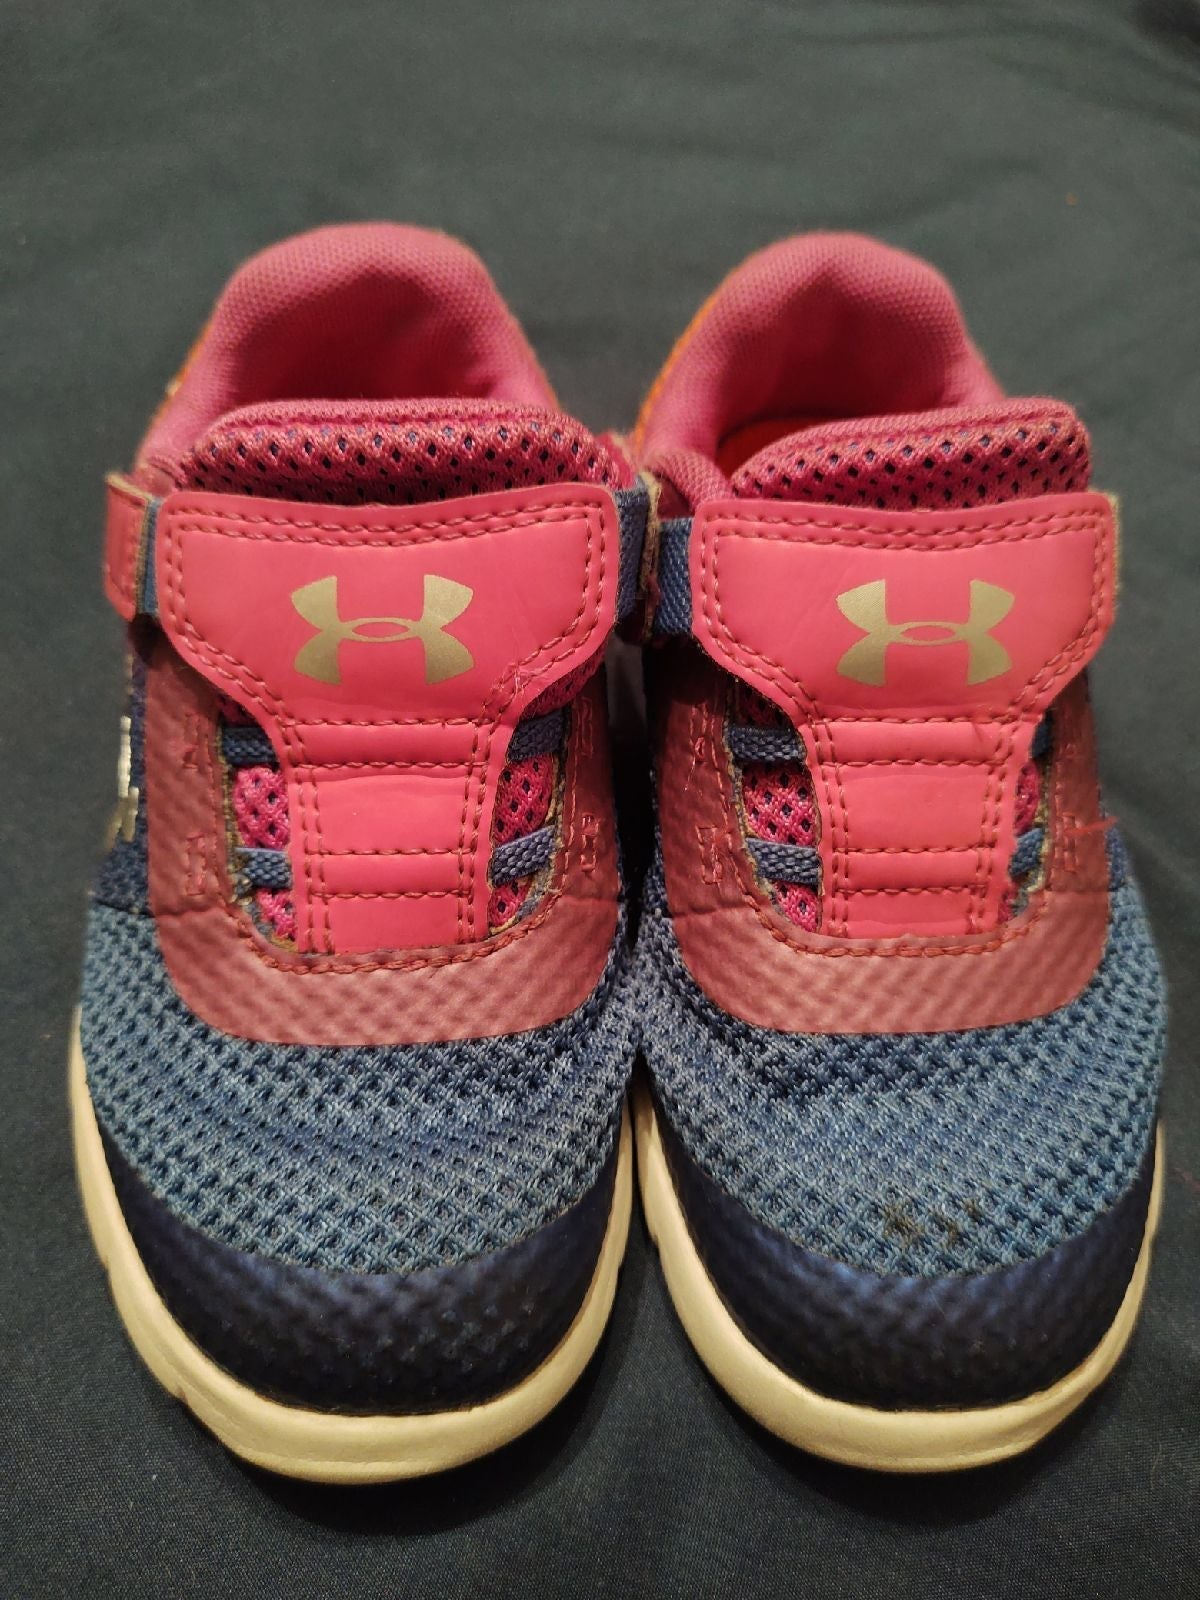 Under armour girl shoes